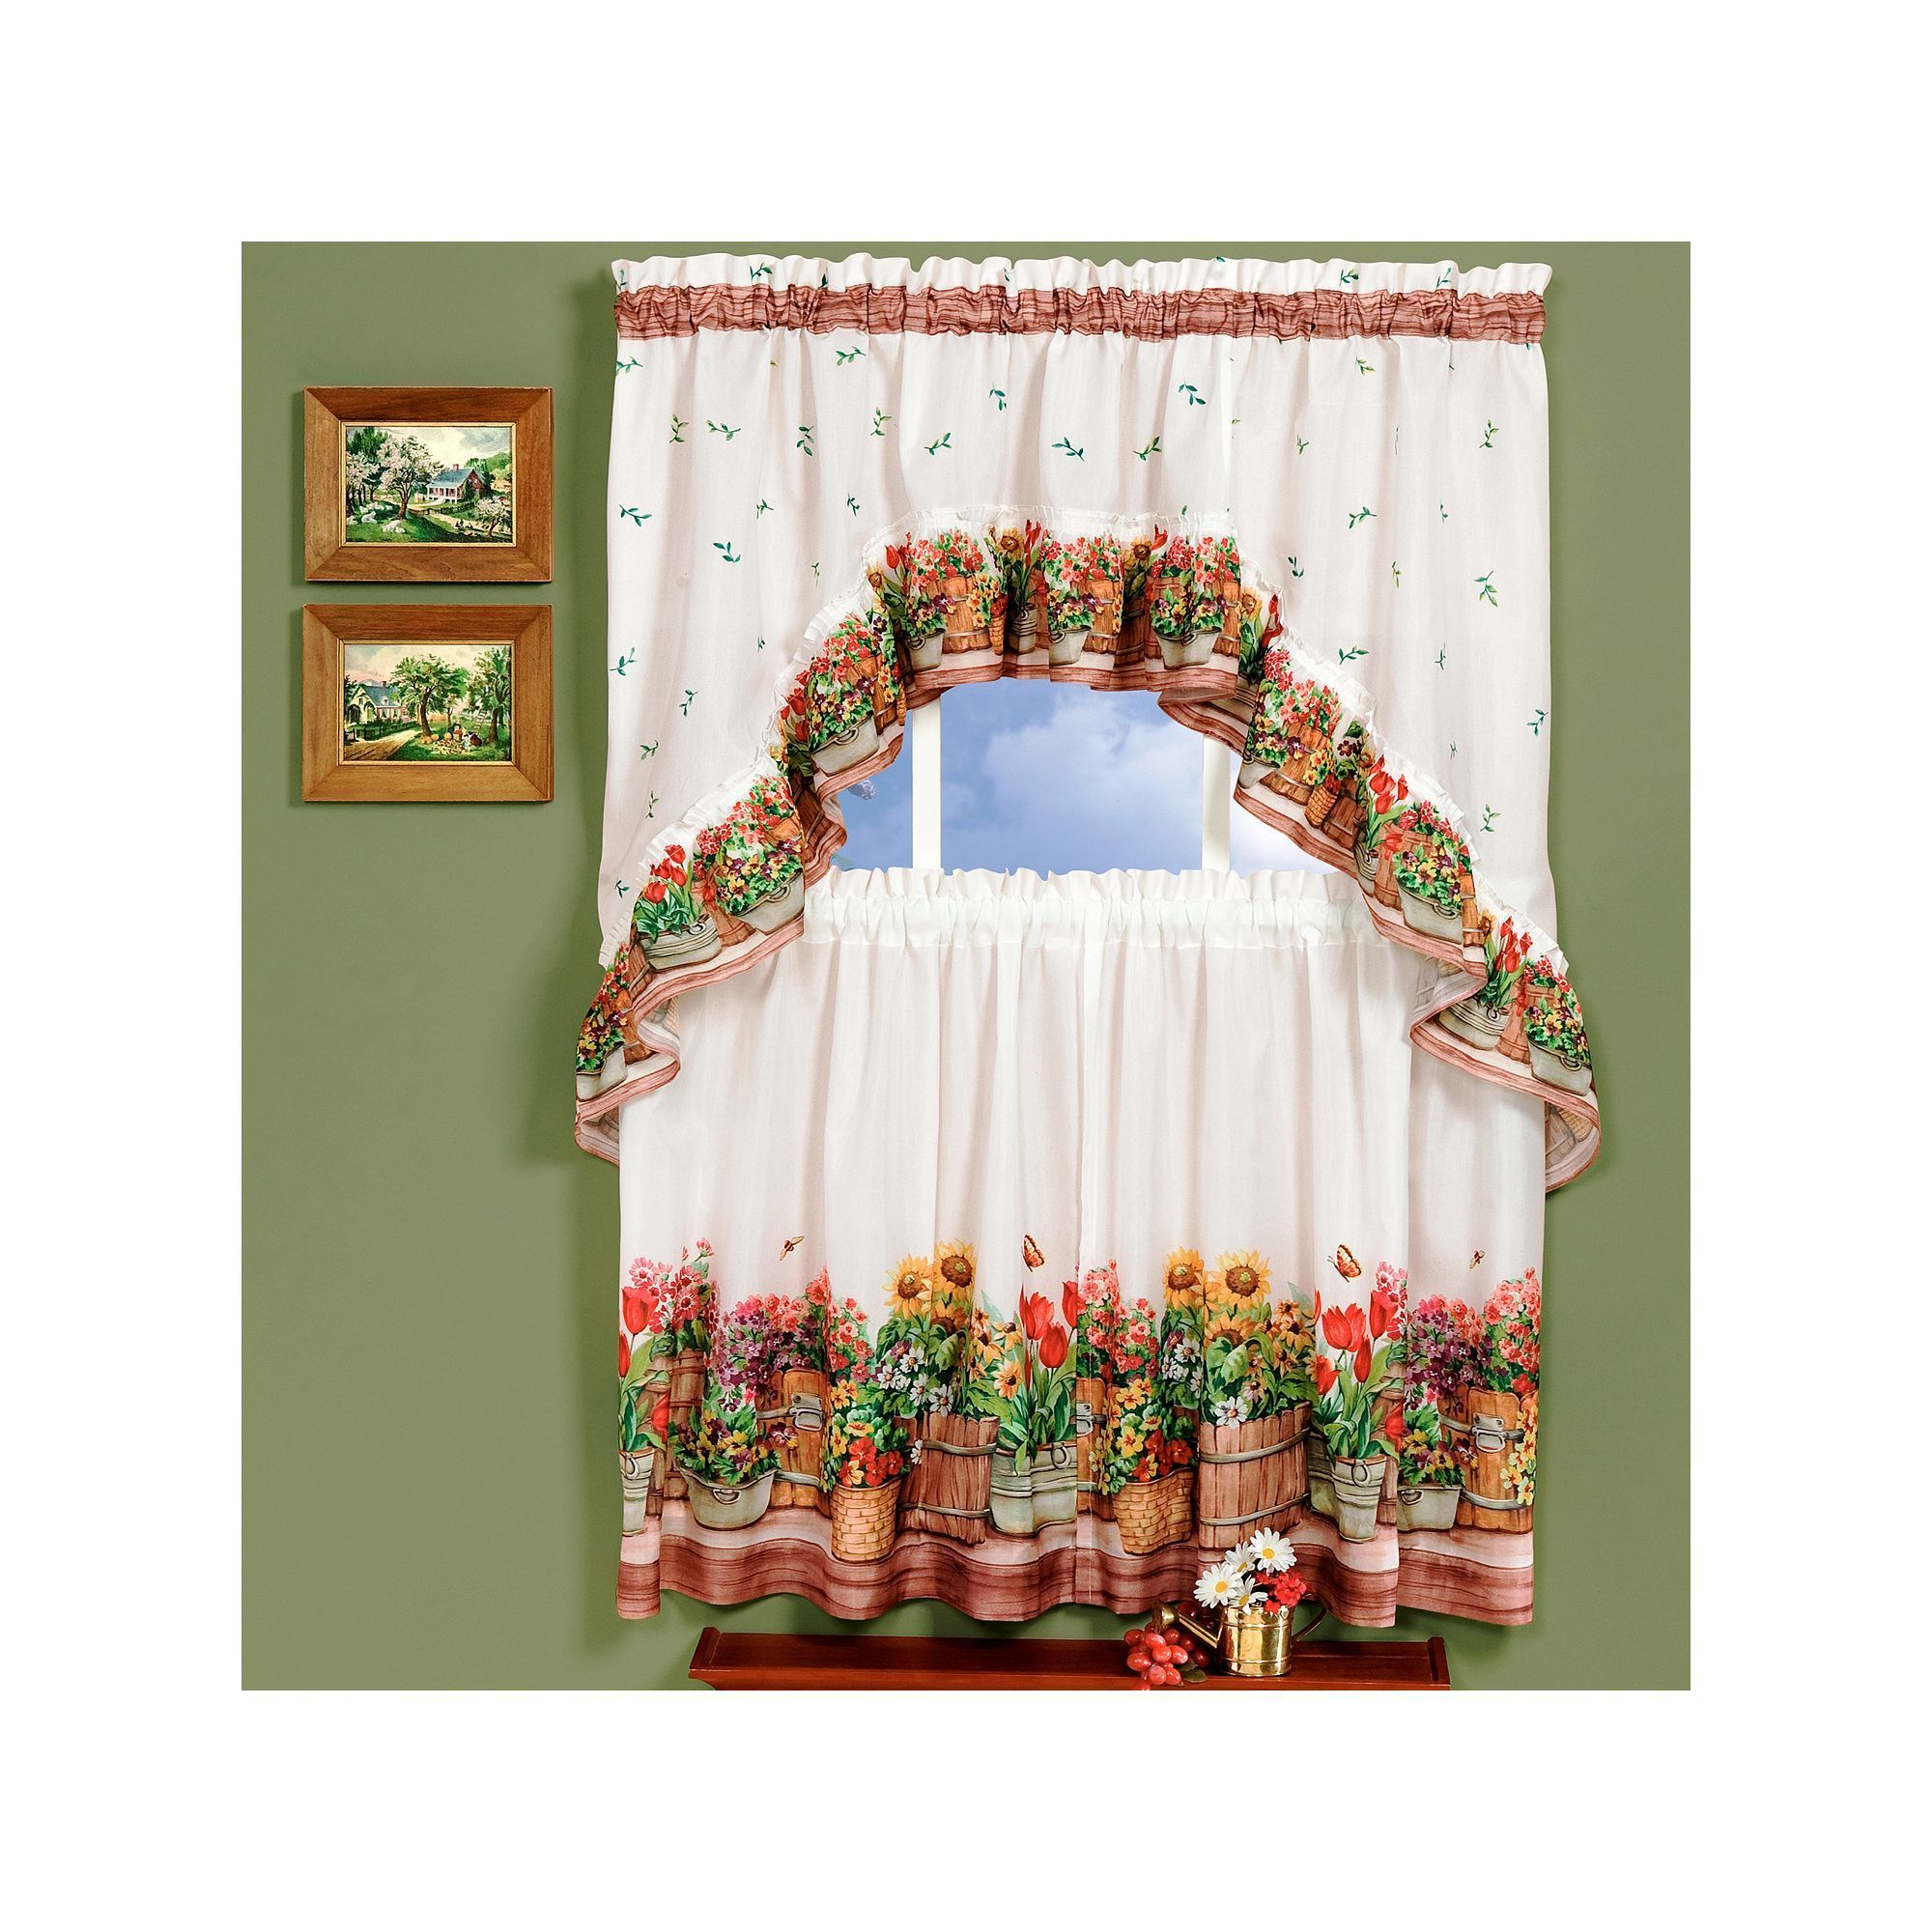 Cottage Ivy Curtain Tiers In Recent Country Garden 3 Piece Swag Tier Kitchen Window Curtain Set (View 5 of 20)